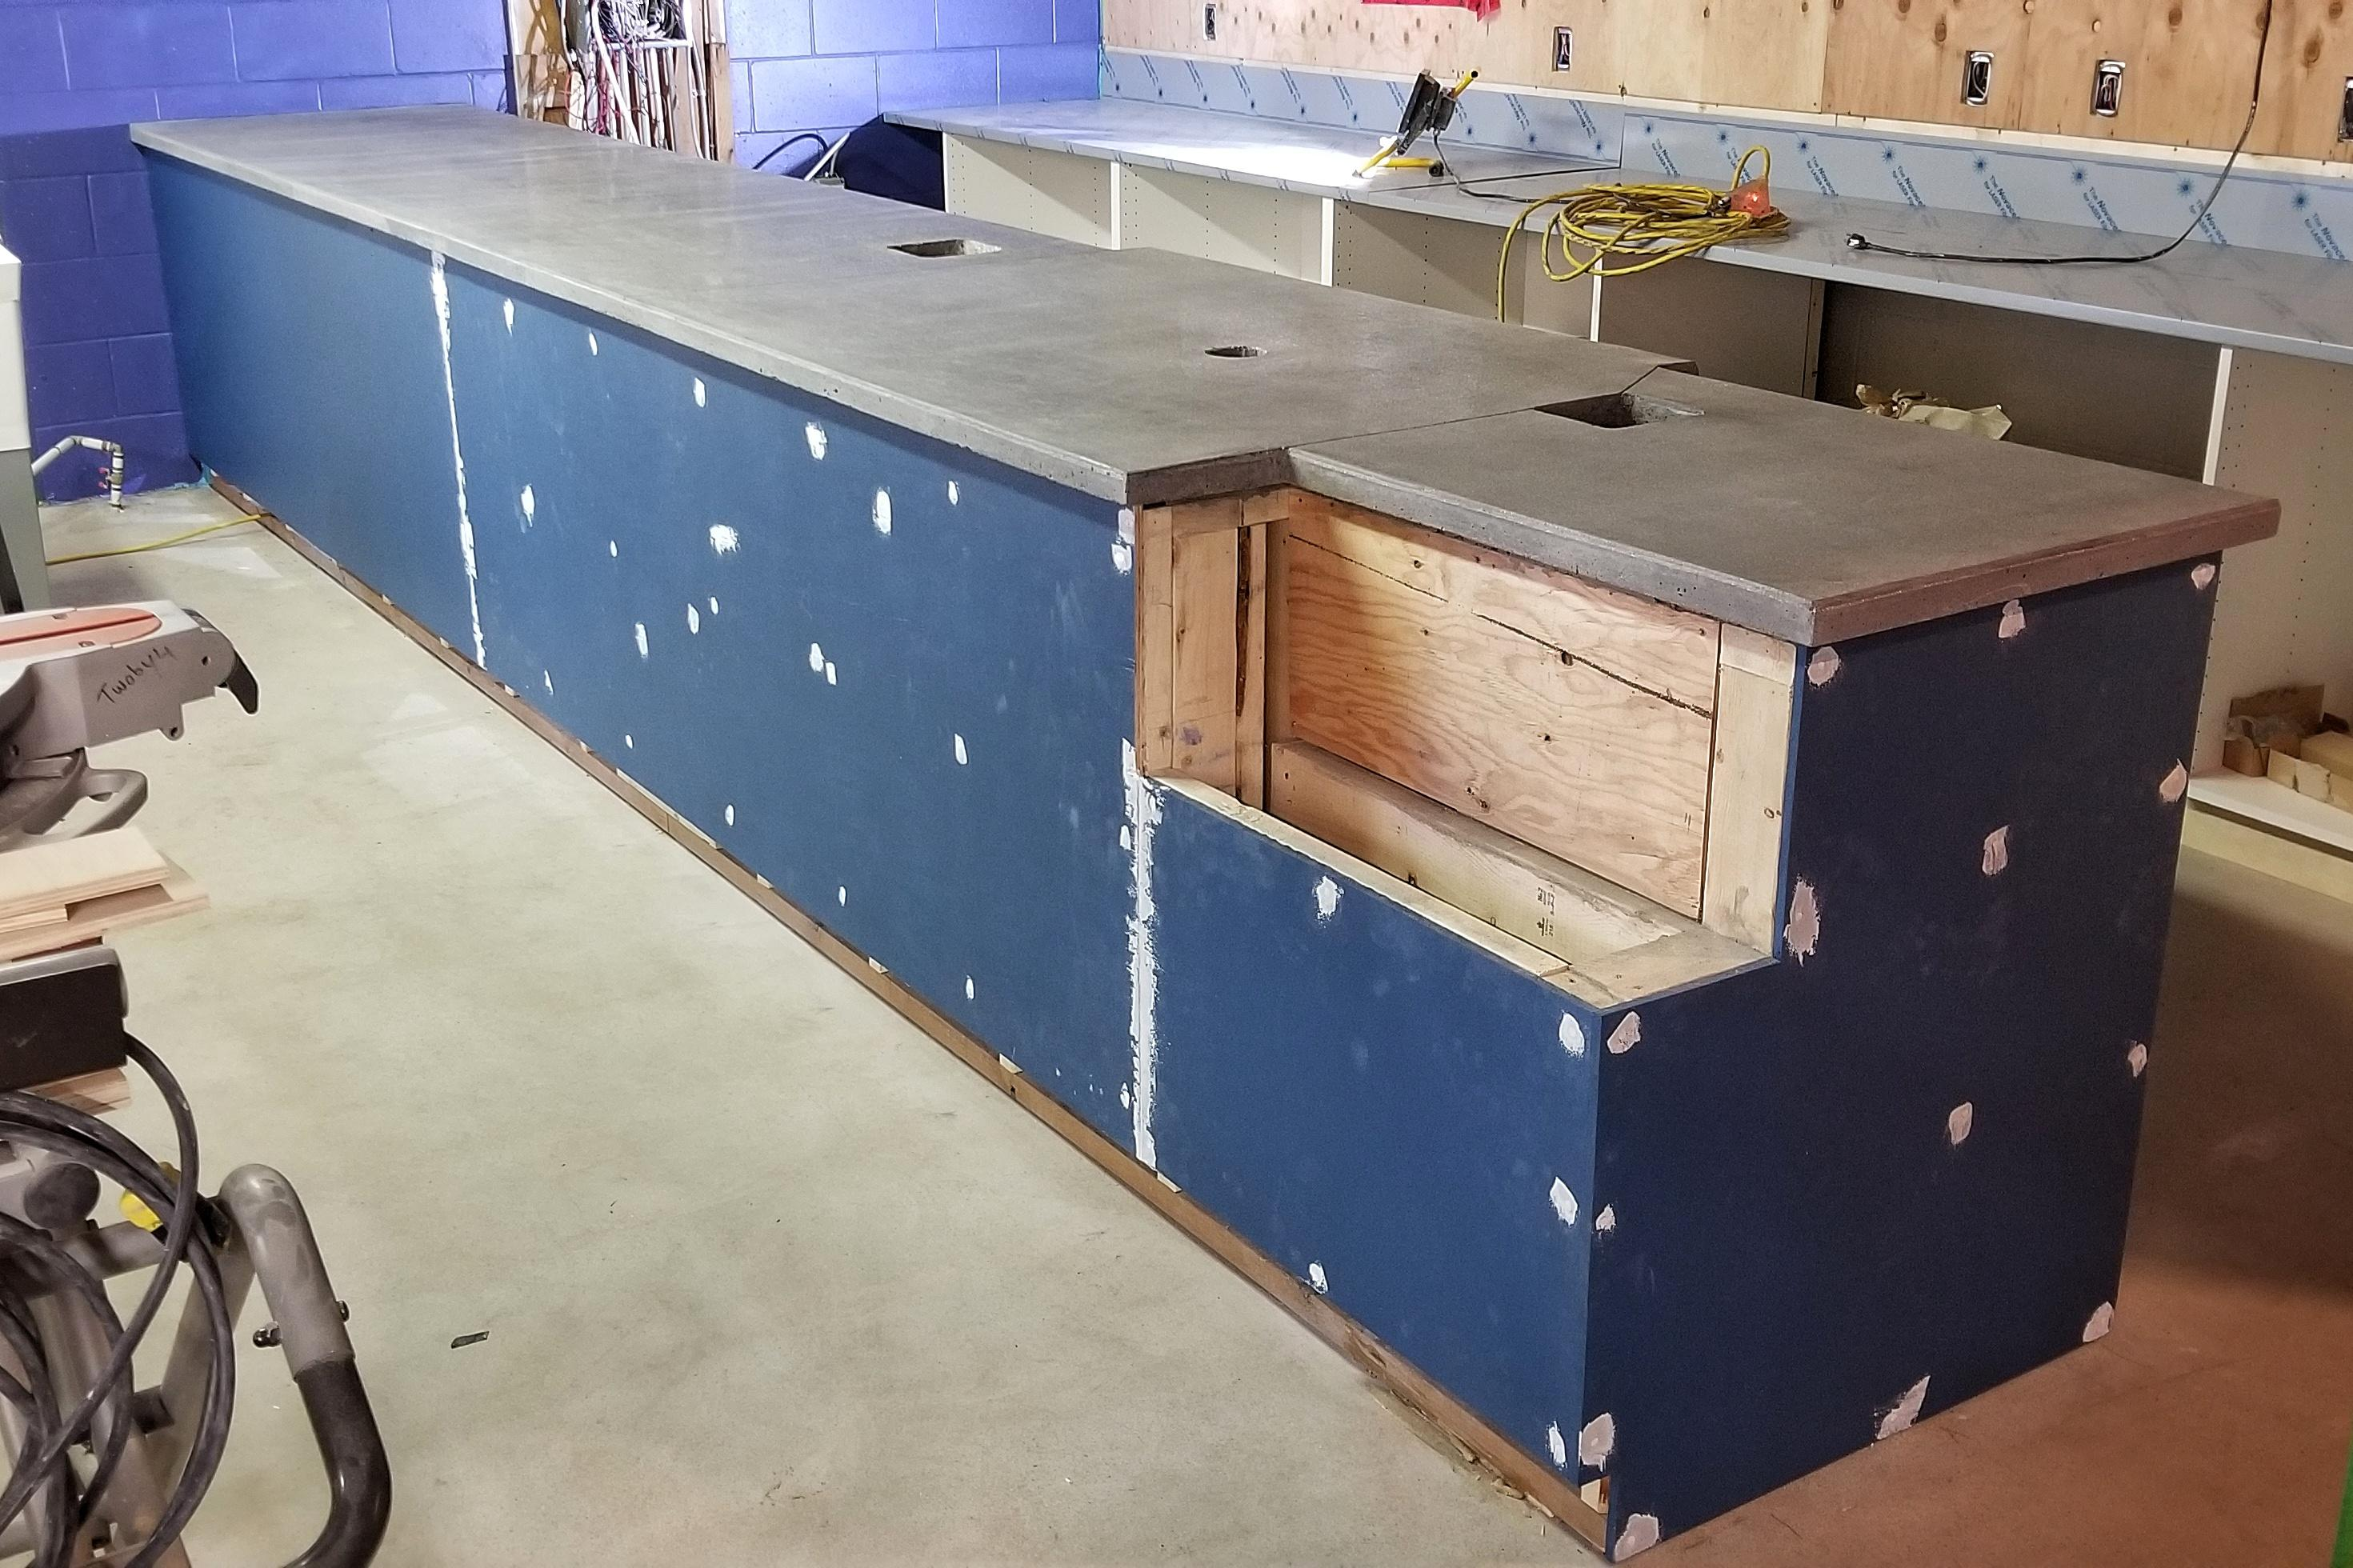 Counter Is Almost Done I Have Three Small Concrete Slabs To Add To The Corner Closest In The Photo How Do I Do It Concrete